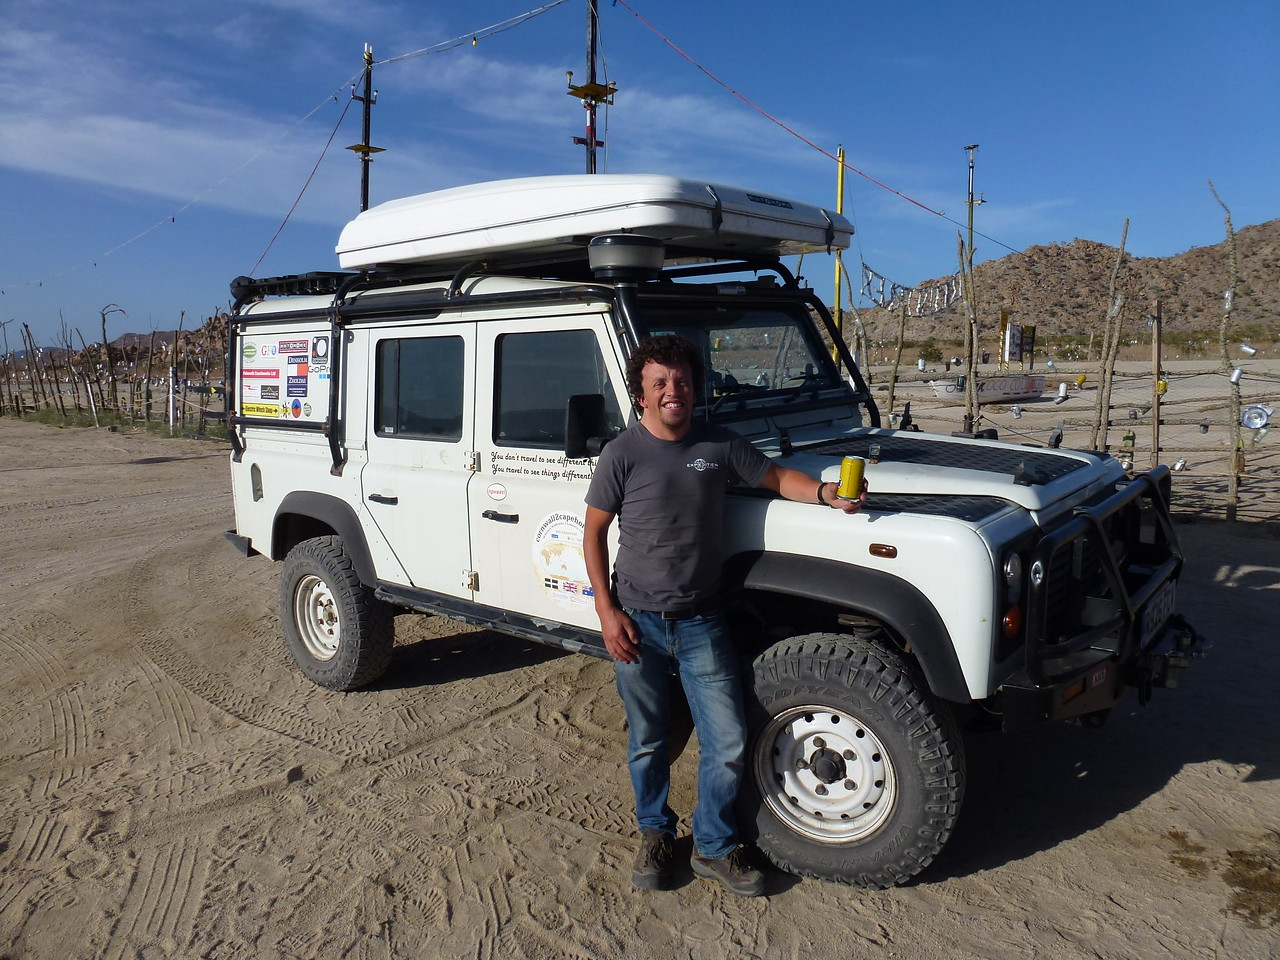 Ben from England <br /> <br /> Met this chap back at Gonzaga Bay .  Traveling around the world in his right hand drive , diesel Landy  or Land Rover for ya'all <br /> <br /> He has a blog - Cornwall2Capehorn .....take a look